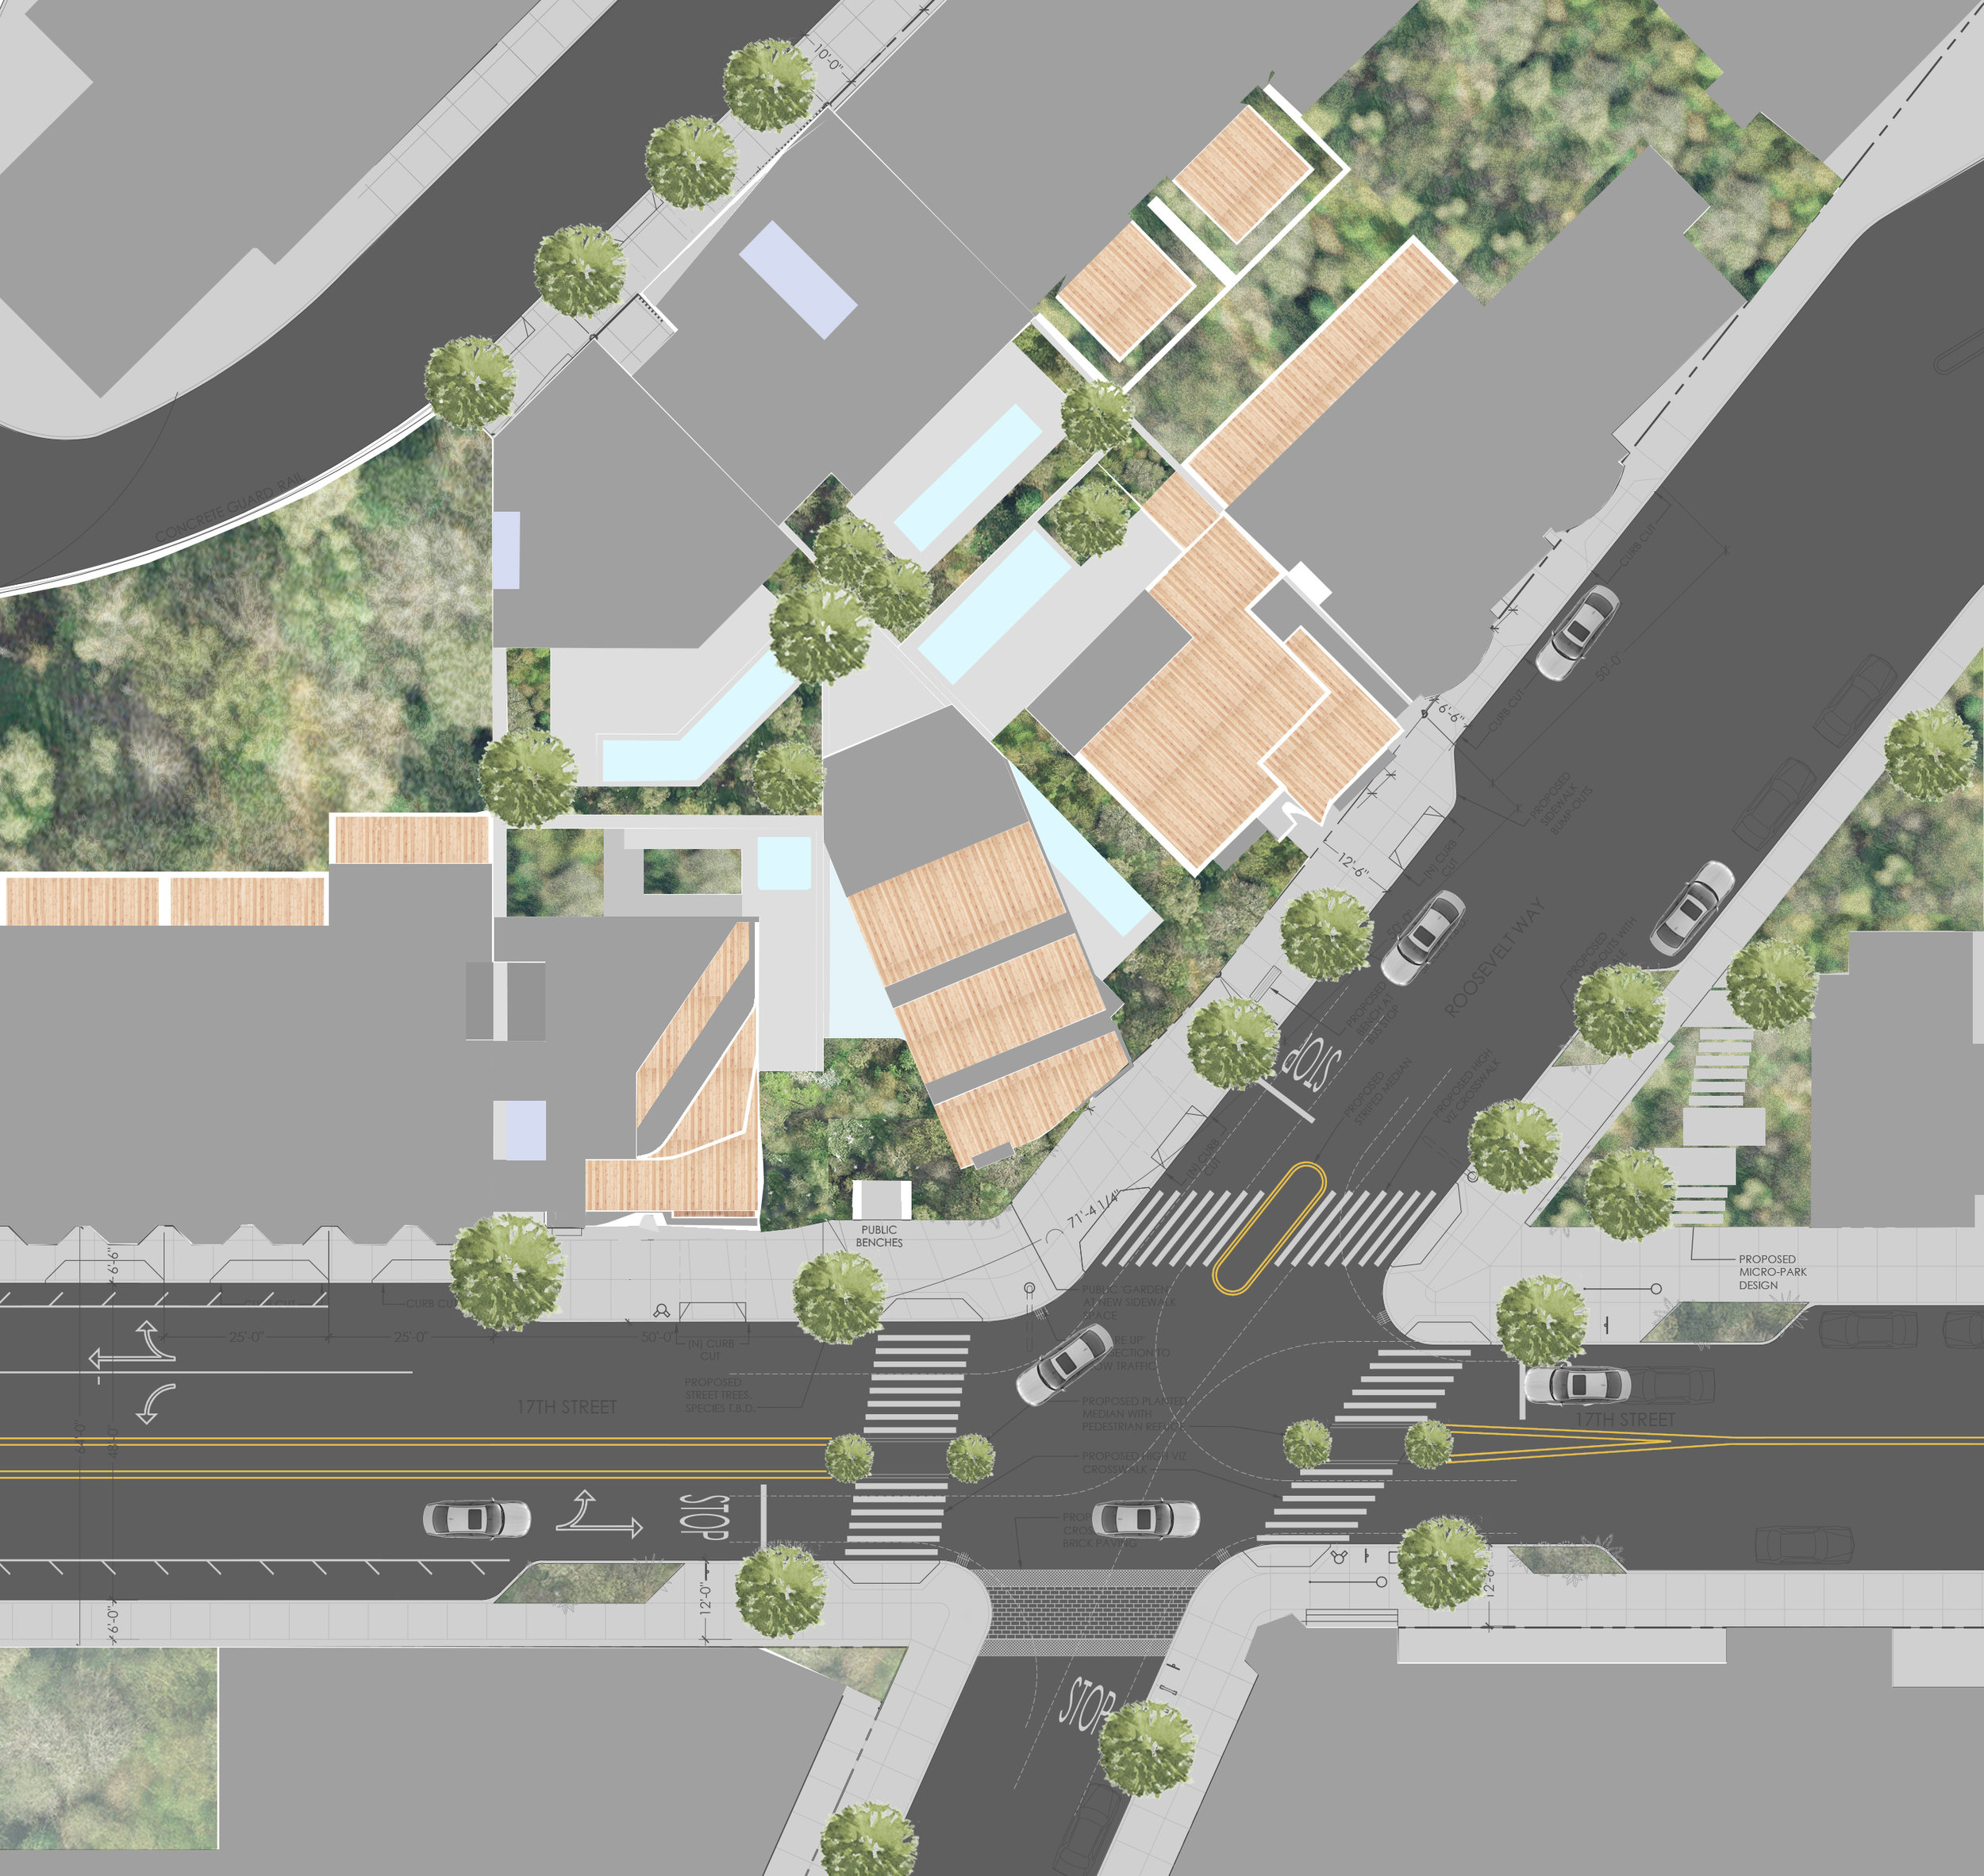 Conceptual Better Streets Plan